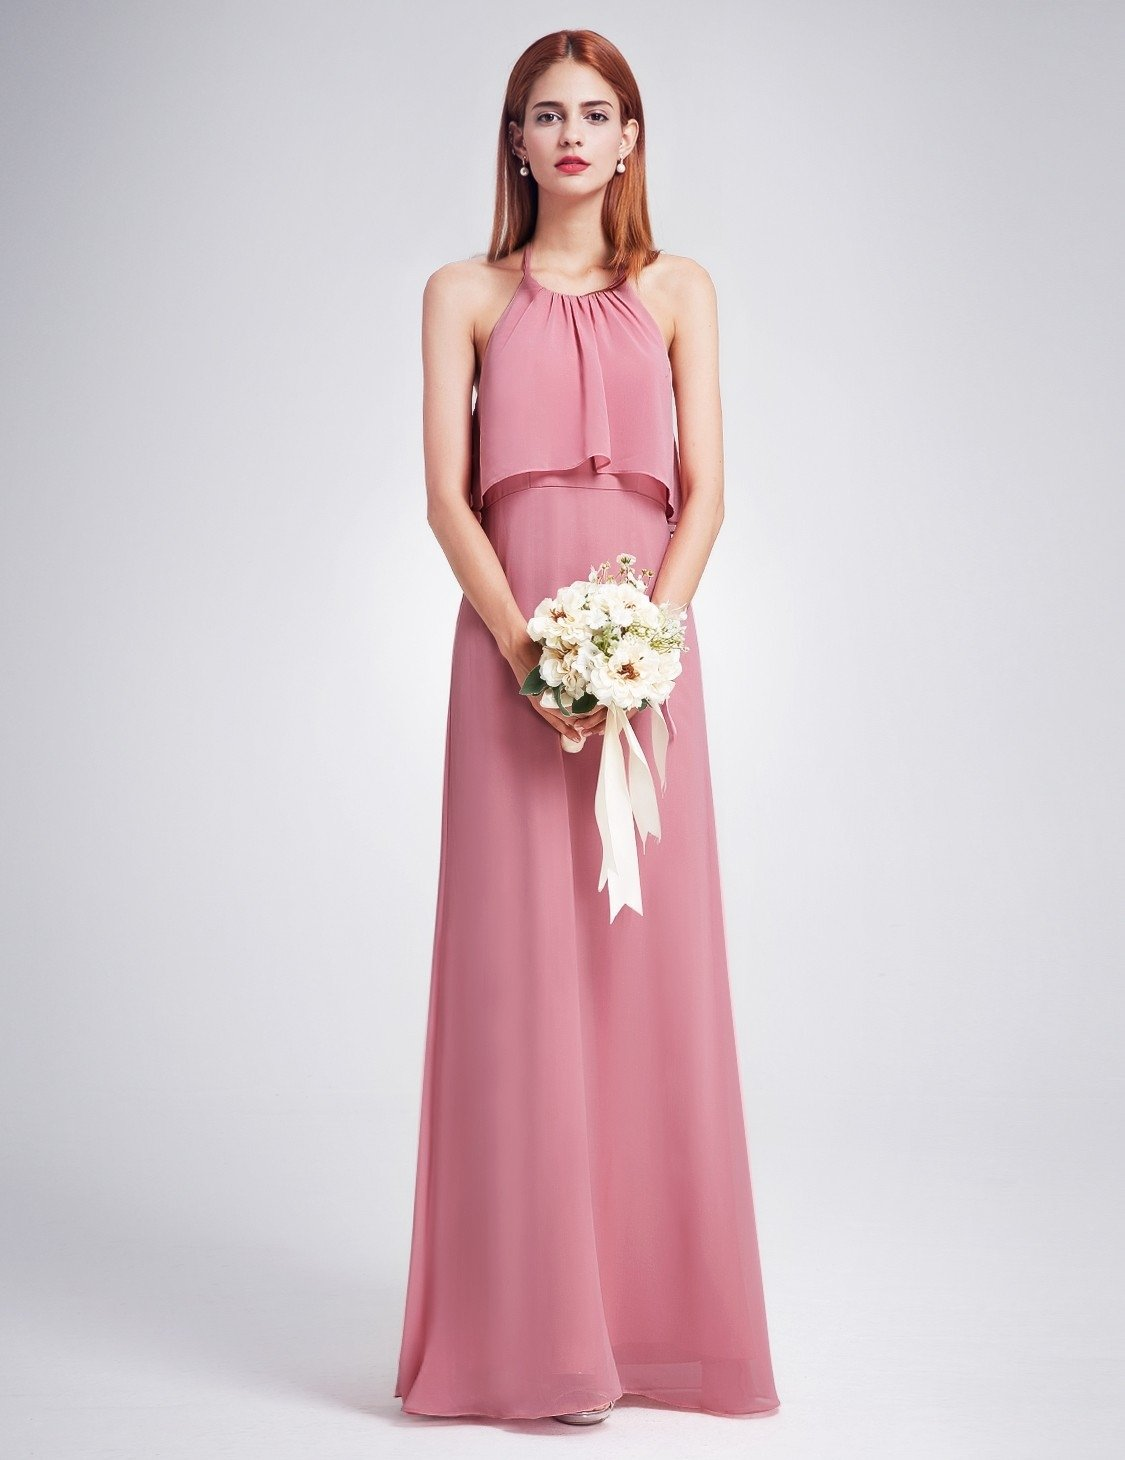 pink bridesmaid dress 3